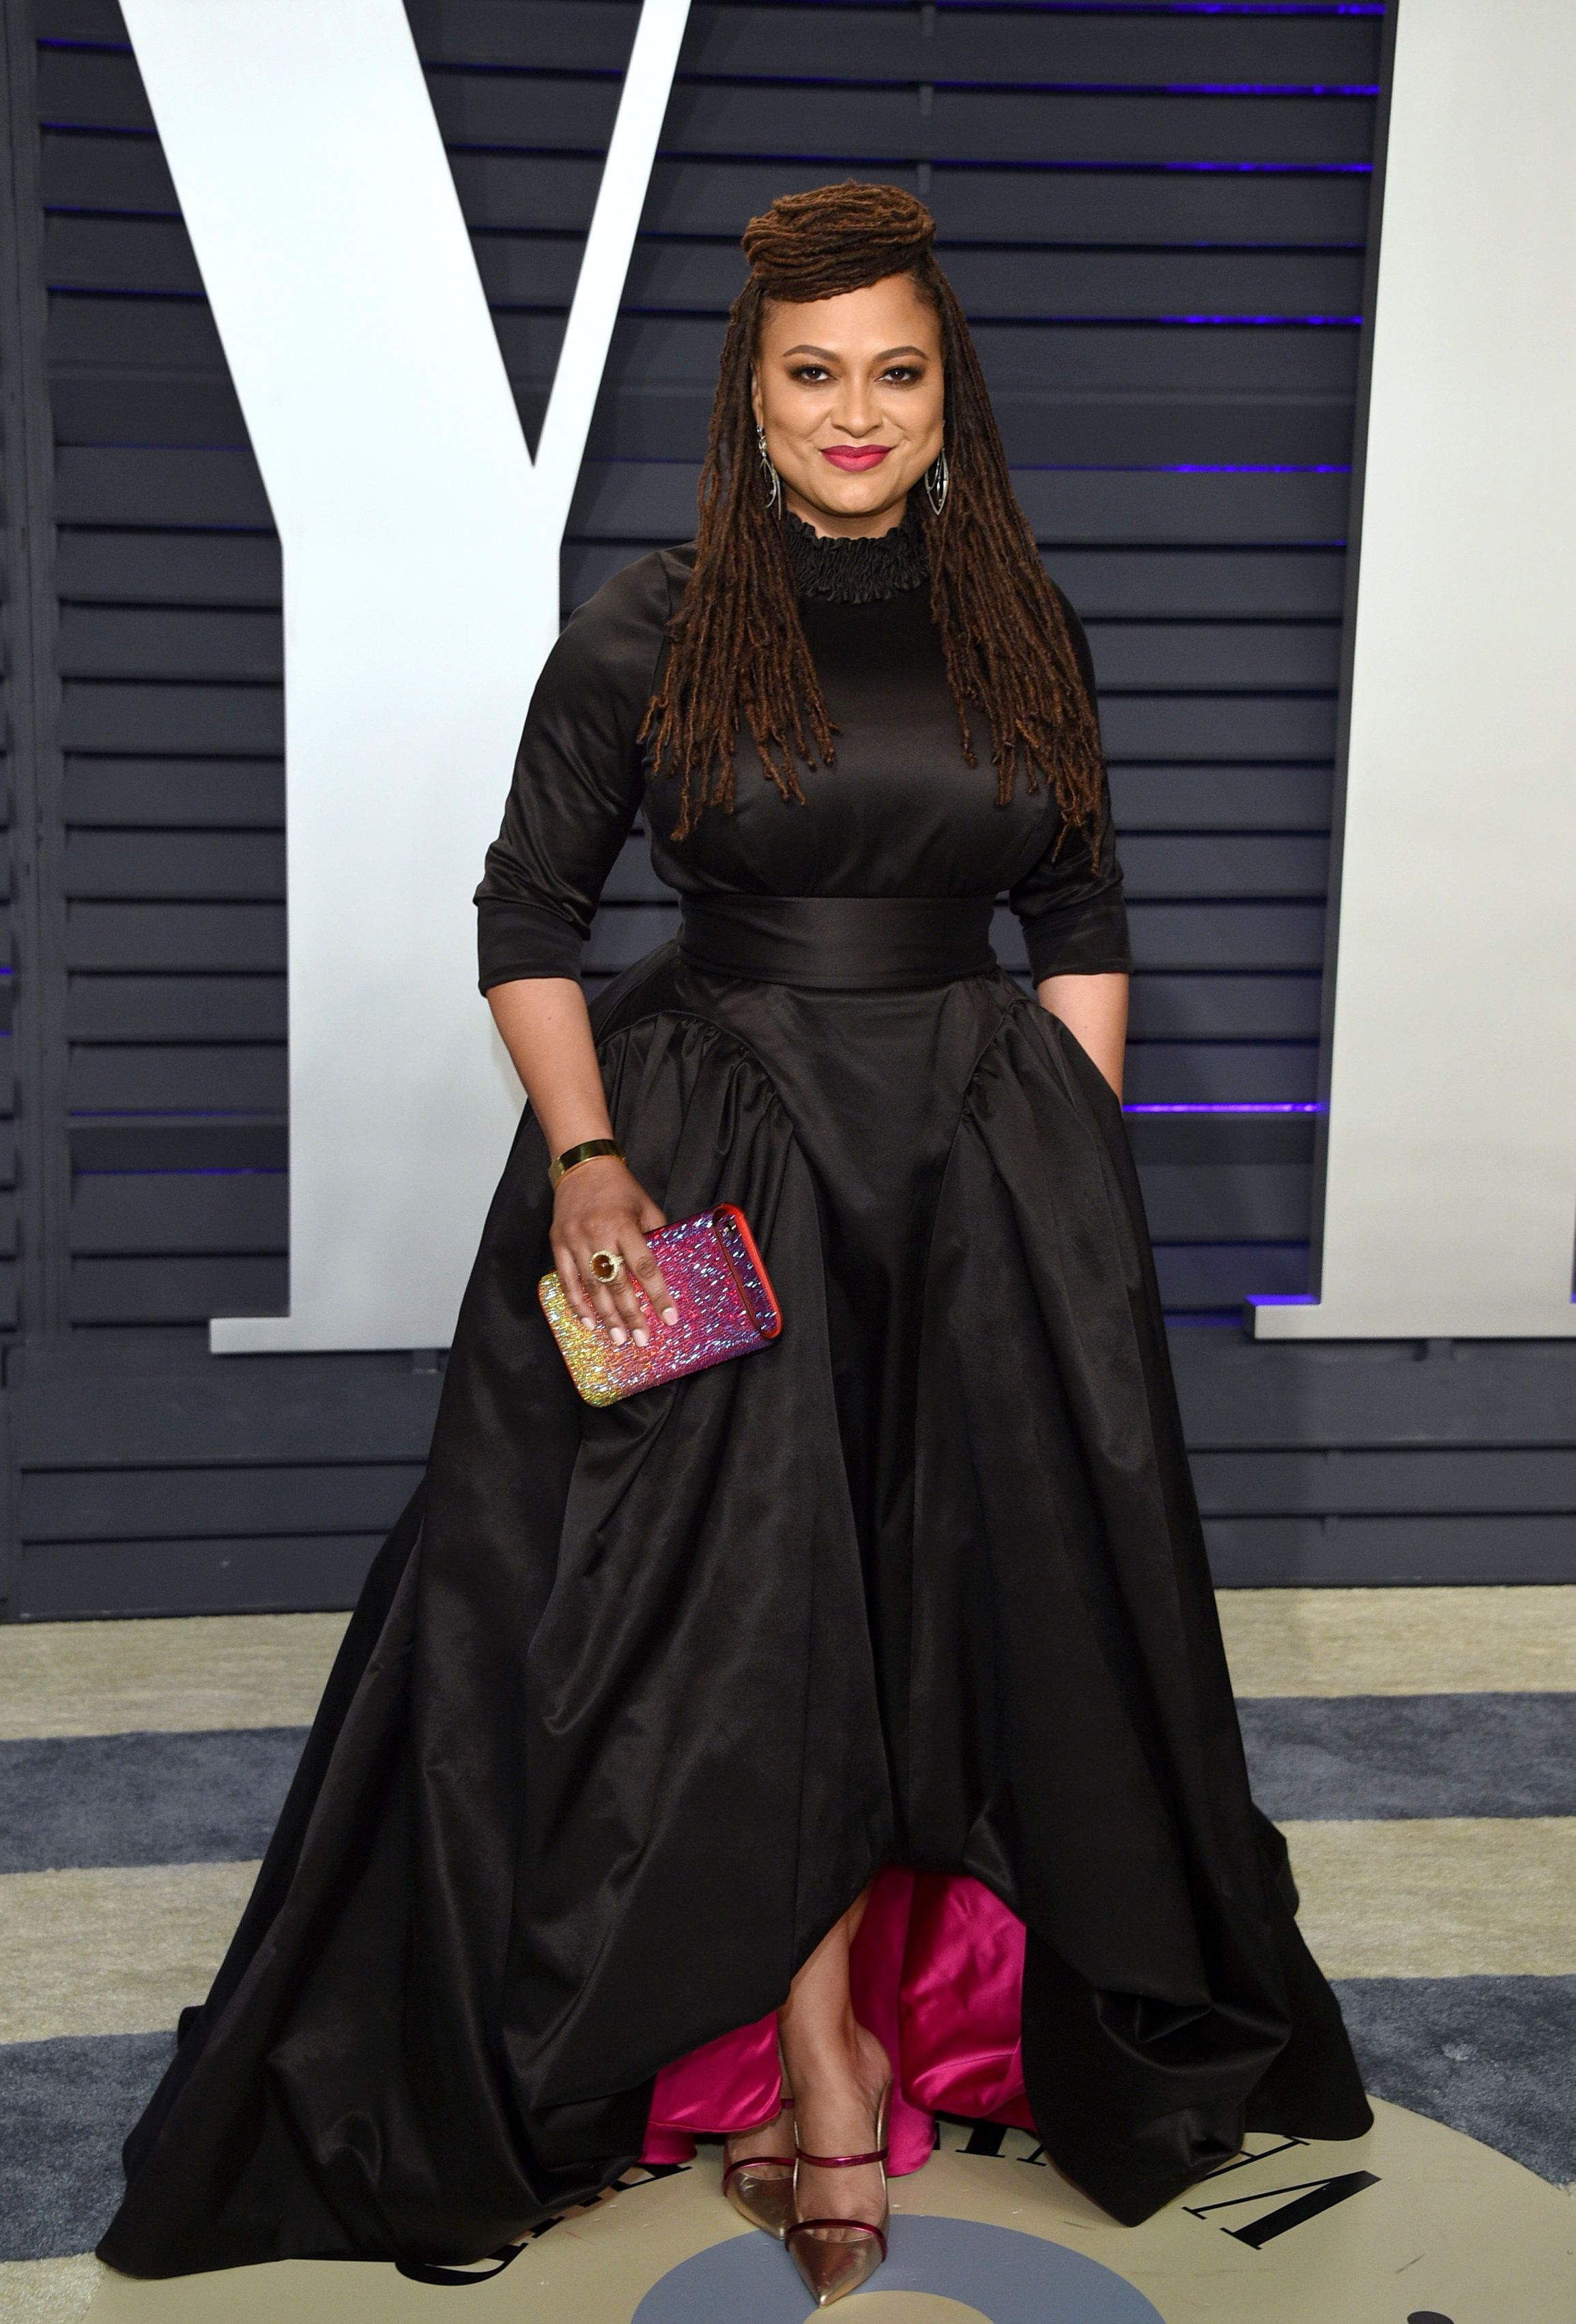 Ava DuVernay arrives at the Vanity Fair Oscar Party on Sunday, Feb. 24, 2019, in Beverly Hills, Calif. (Photo by Evan Agostini/Invision/AP)